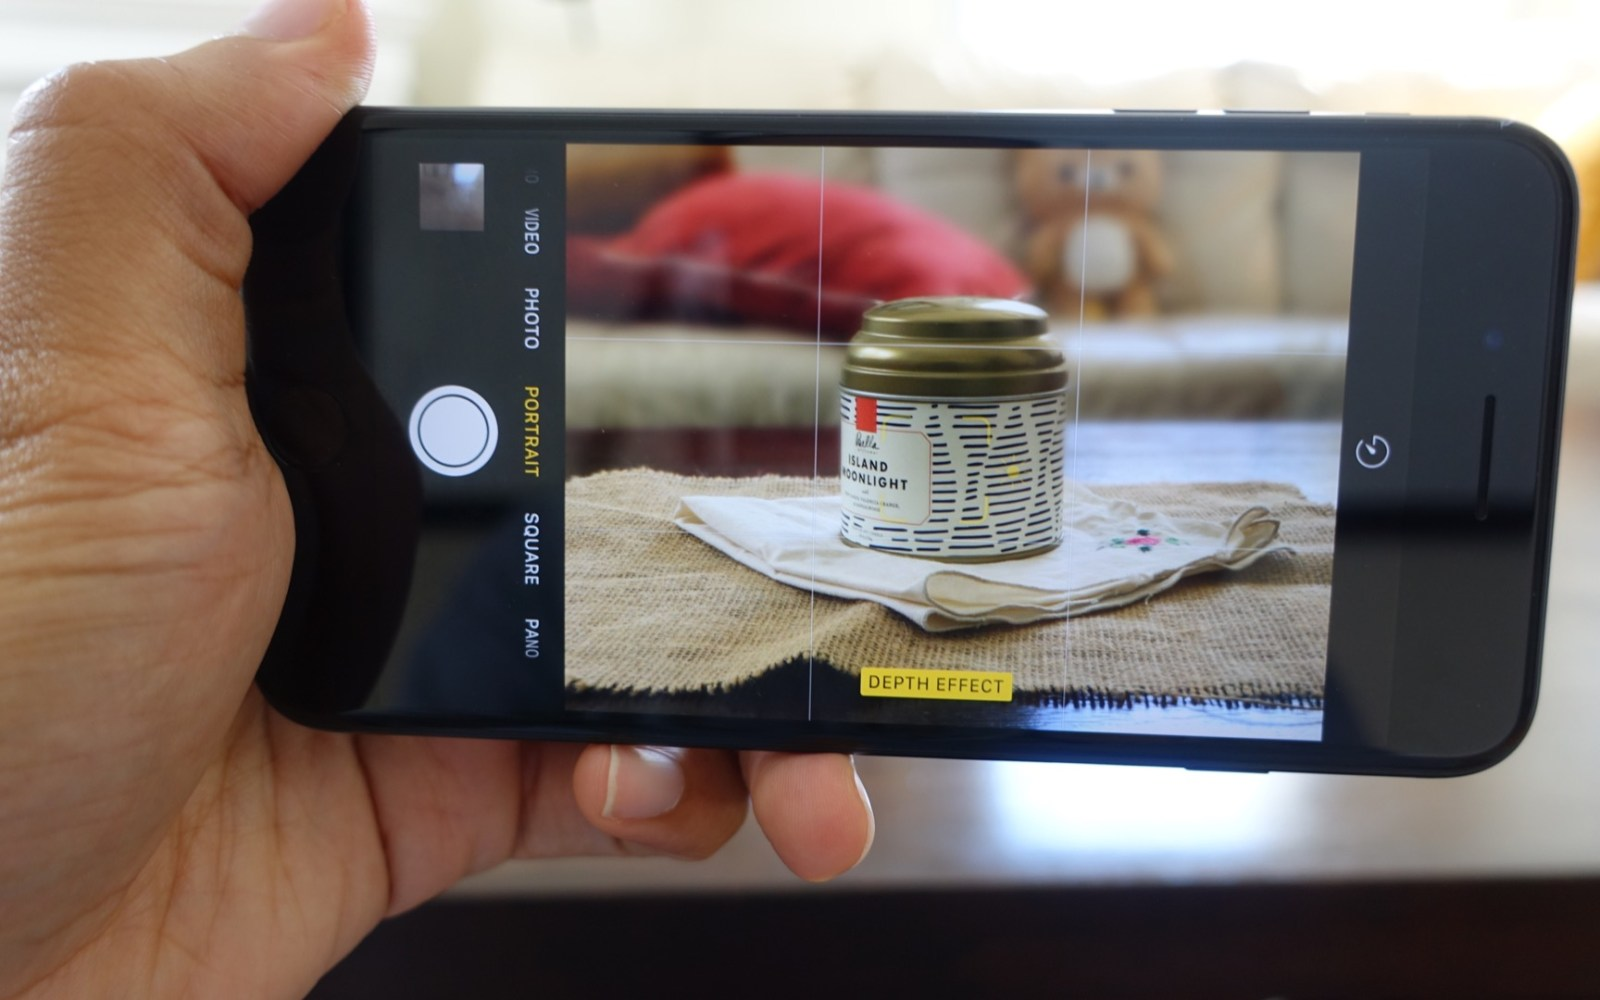 Apple shares tips for using Portrait mode with iPhone 7 Plus dual cameras from pro photographers